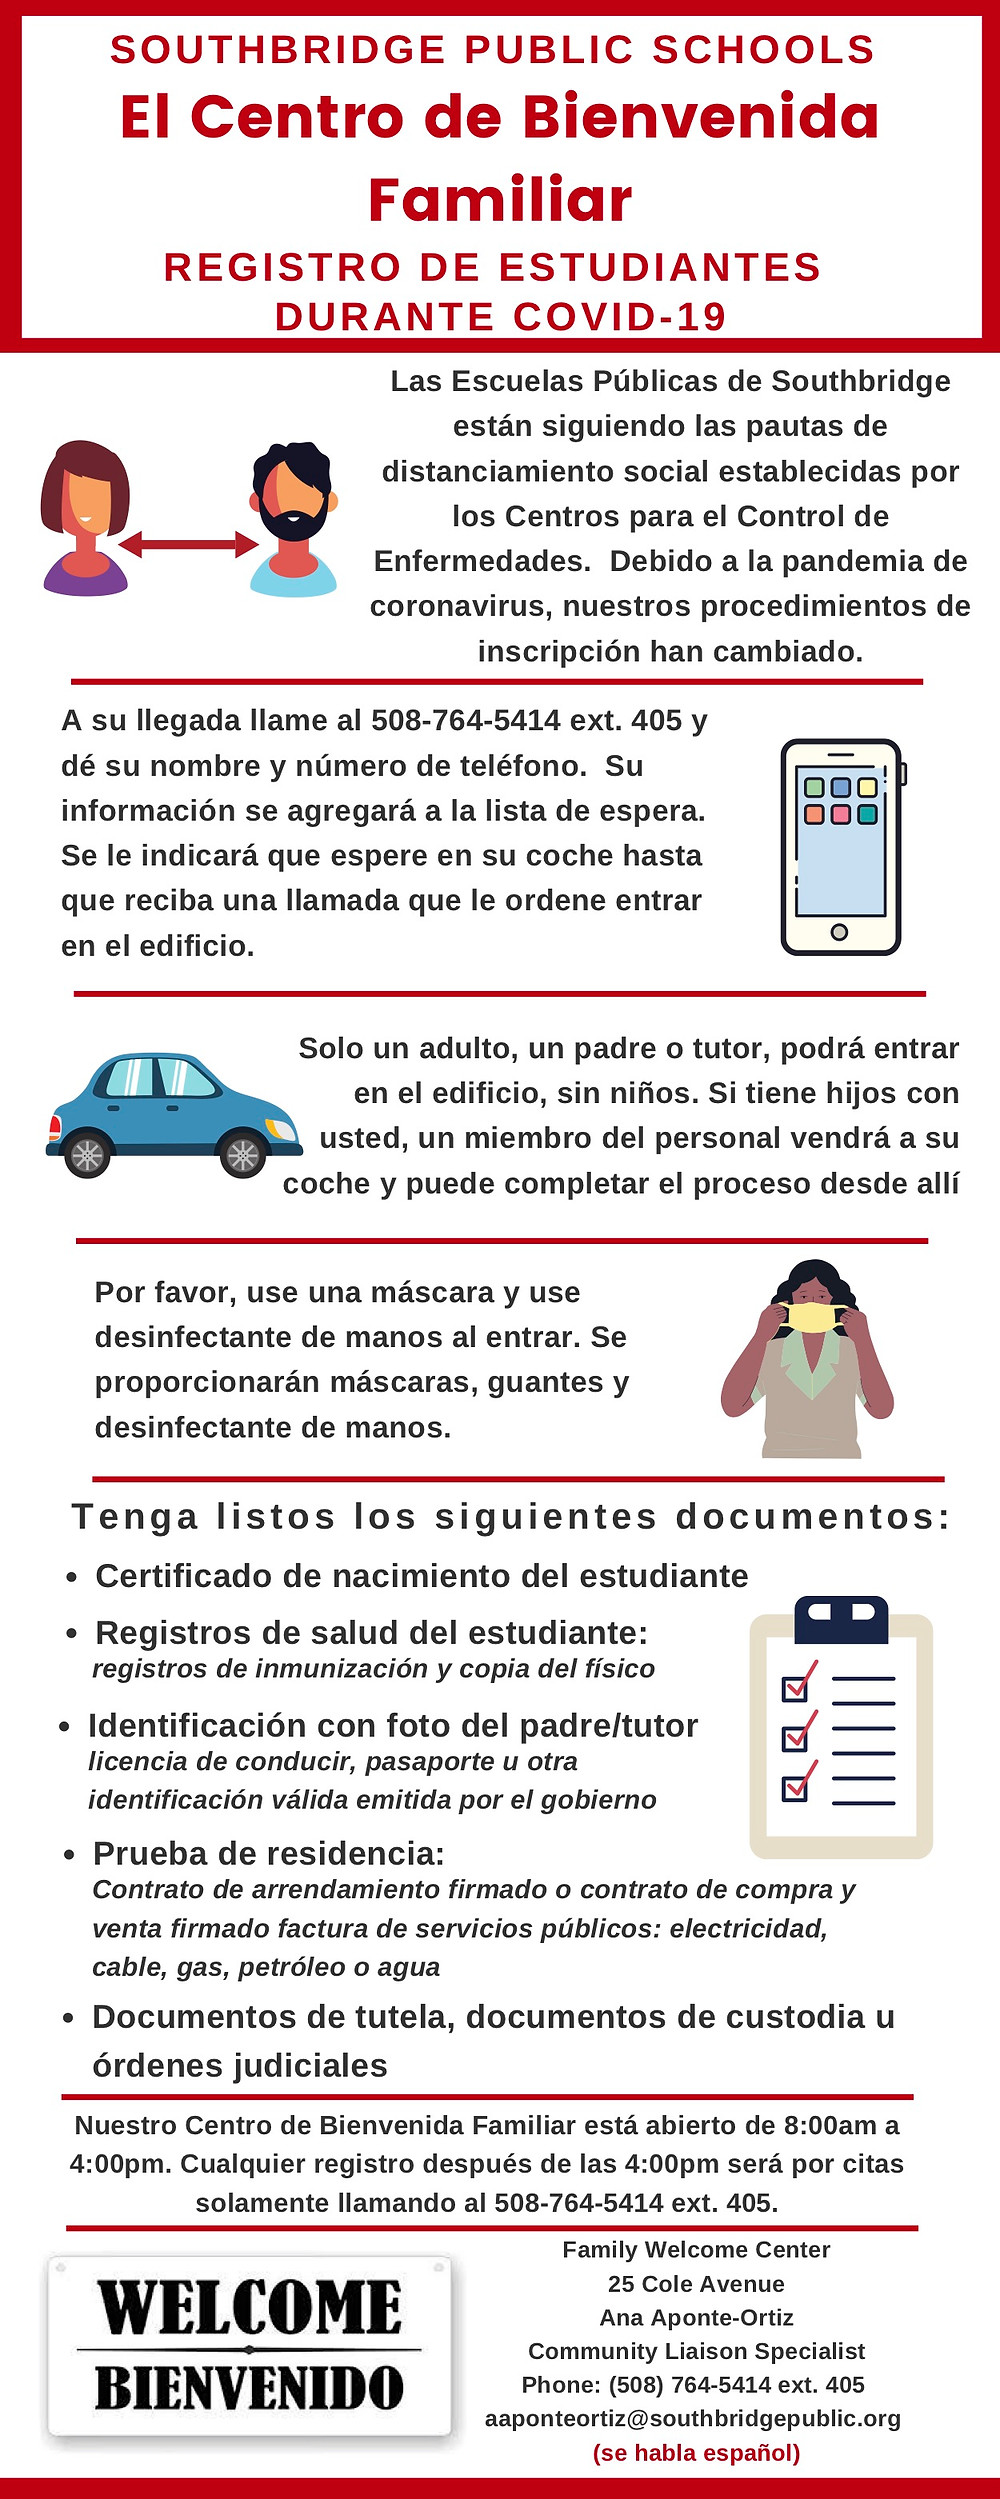 Infographic in Spanish. All content in the infographic is also in the body of this blog post.